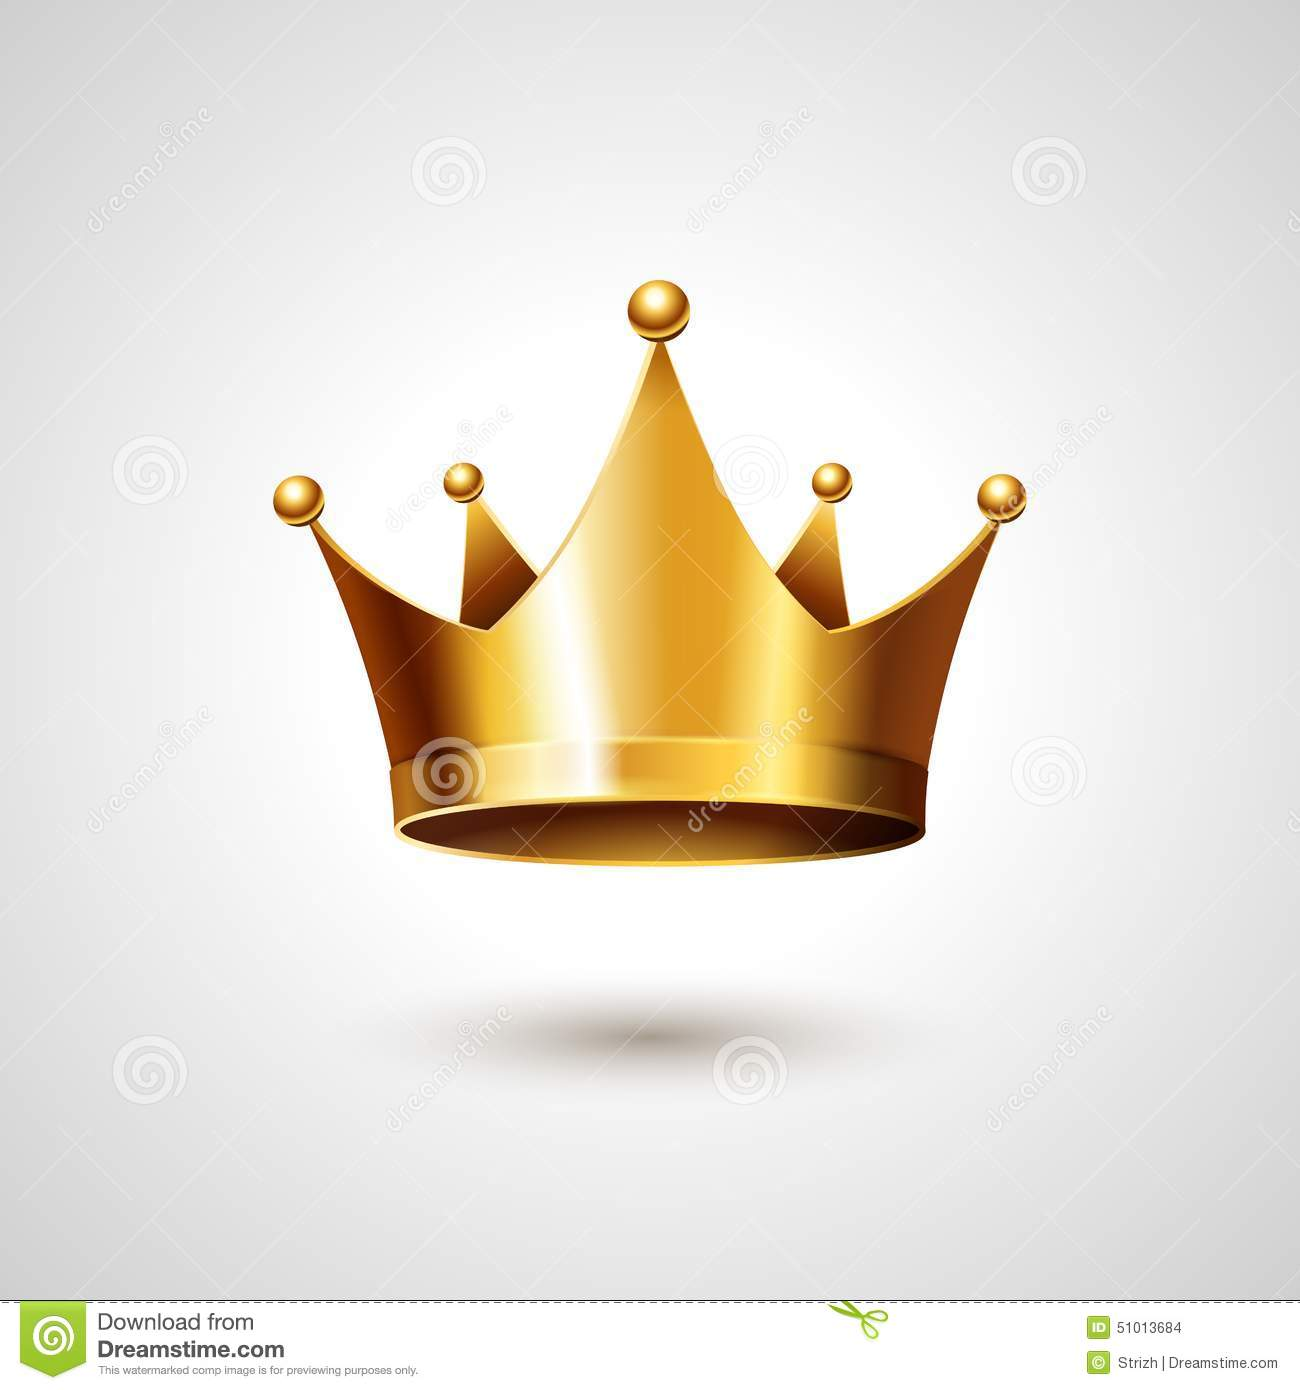 Gold crown background - photo#8